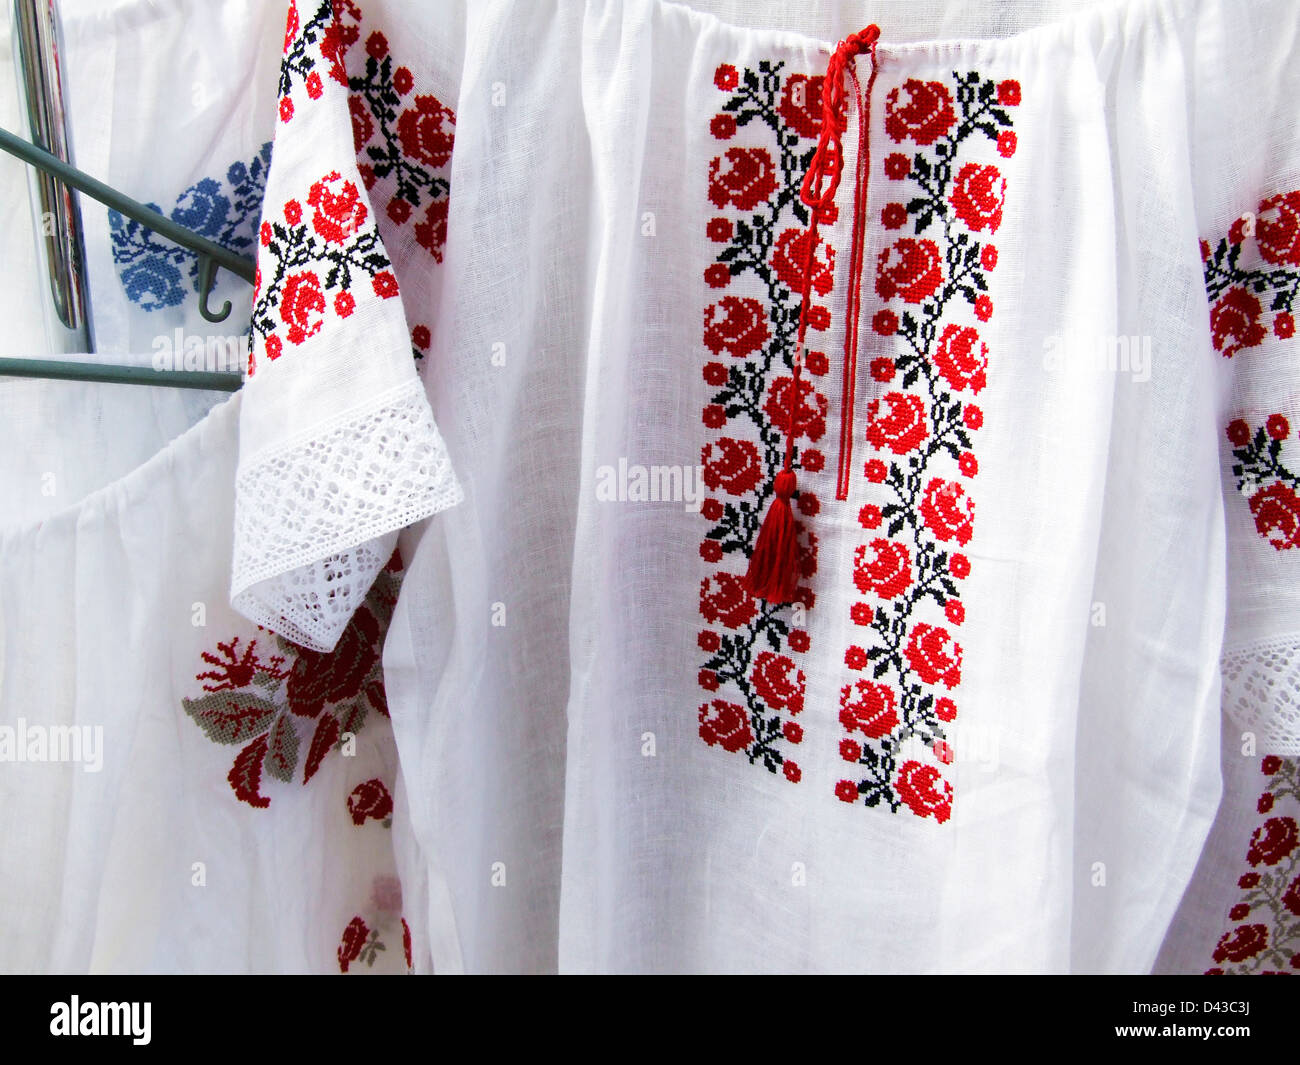 Embroidered Shirts